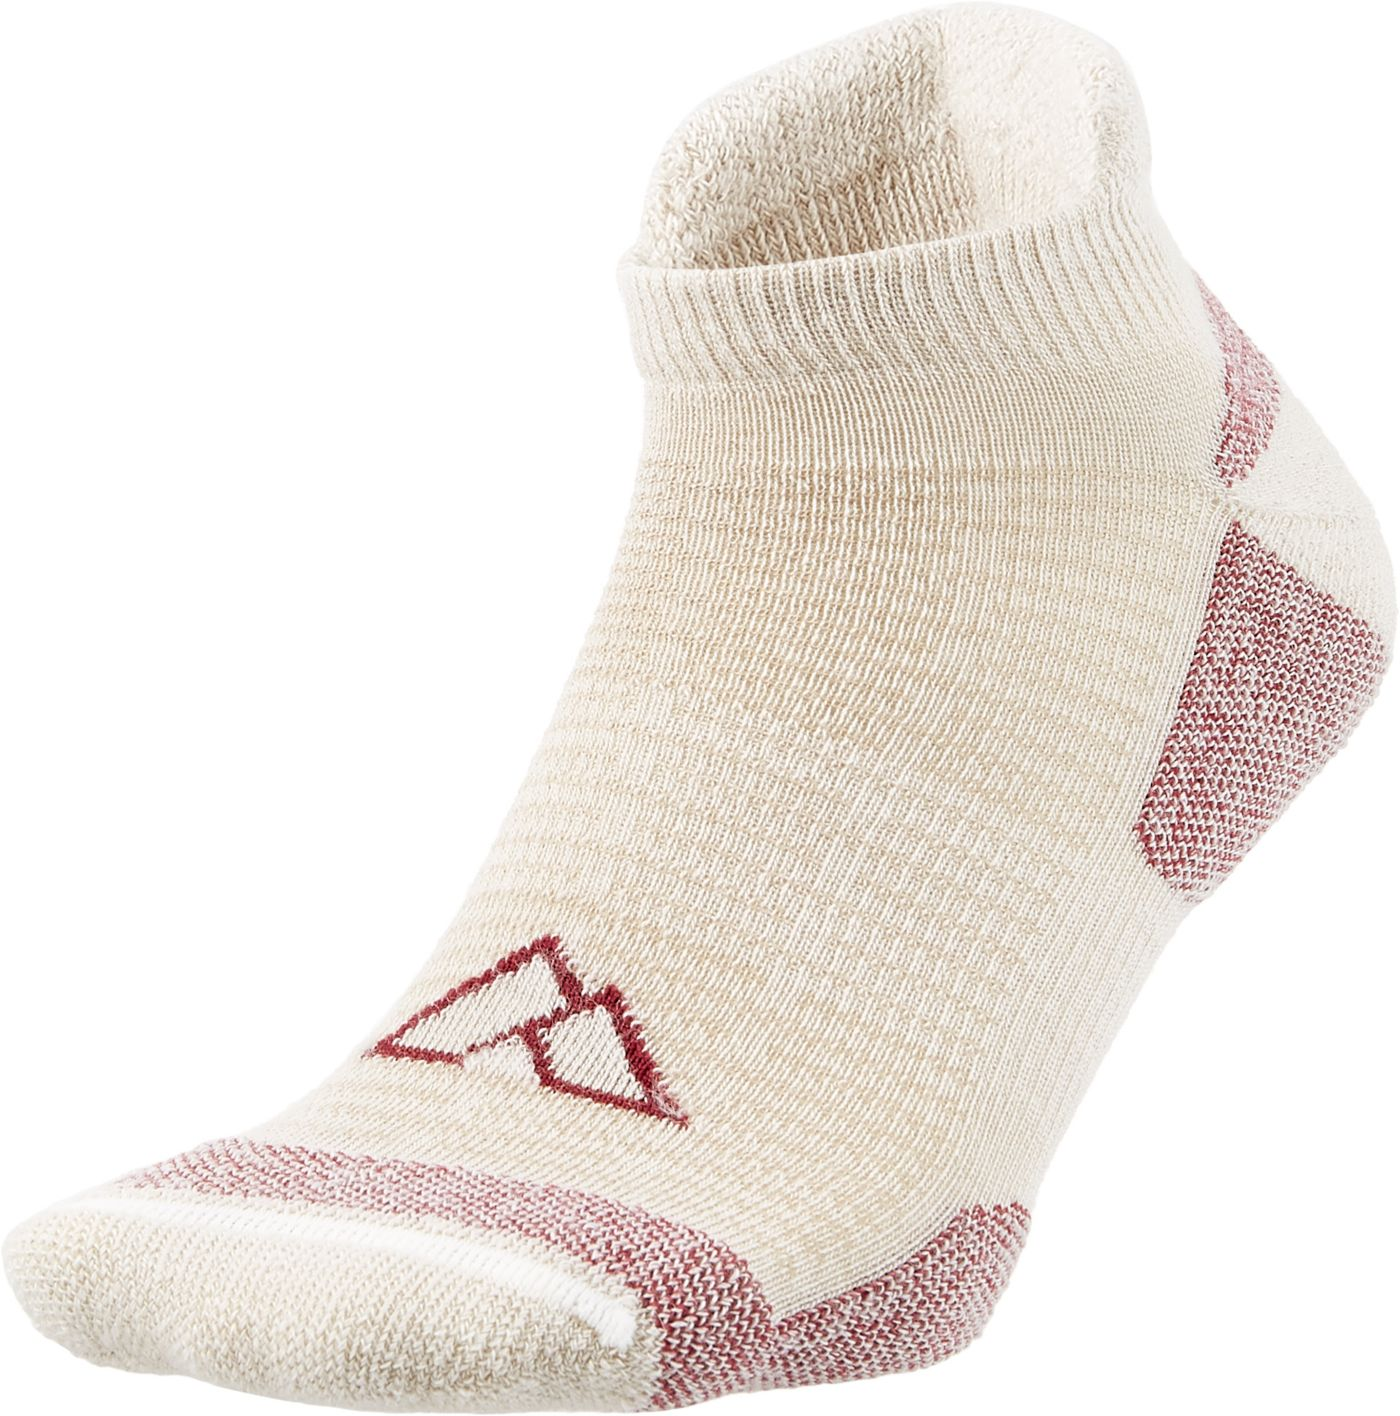 Alpine Design Women's Lowcut Hiking Socks